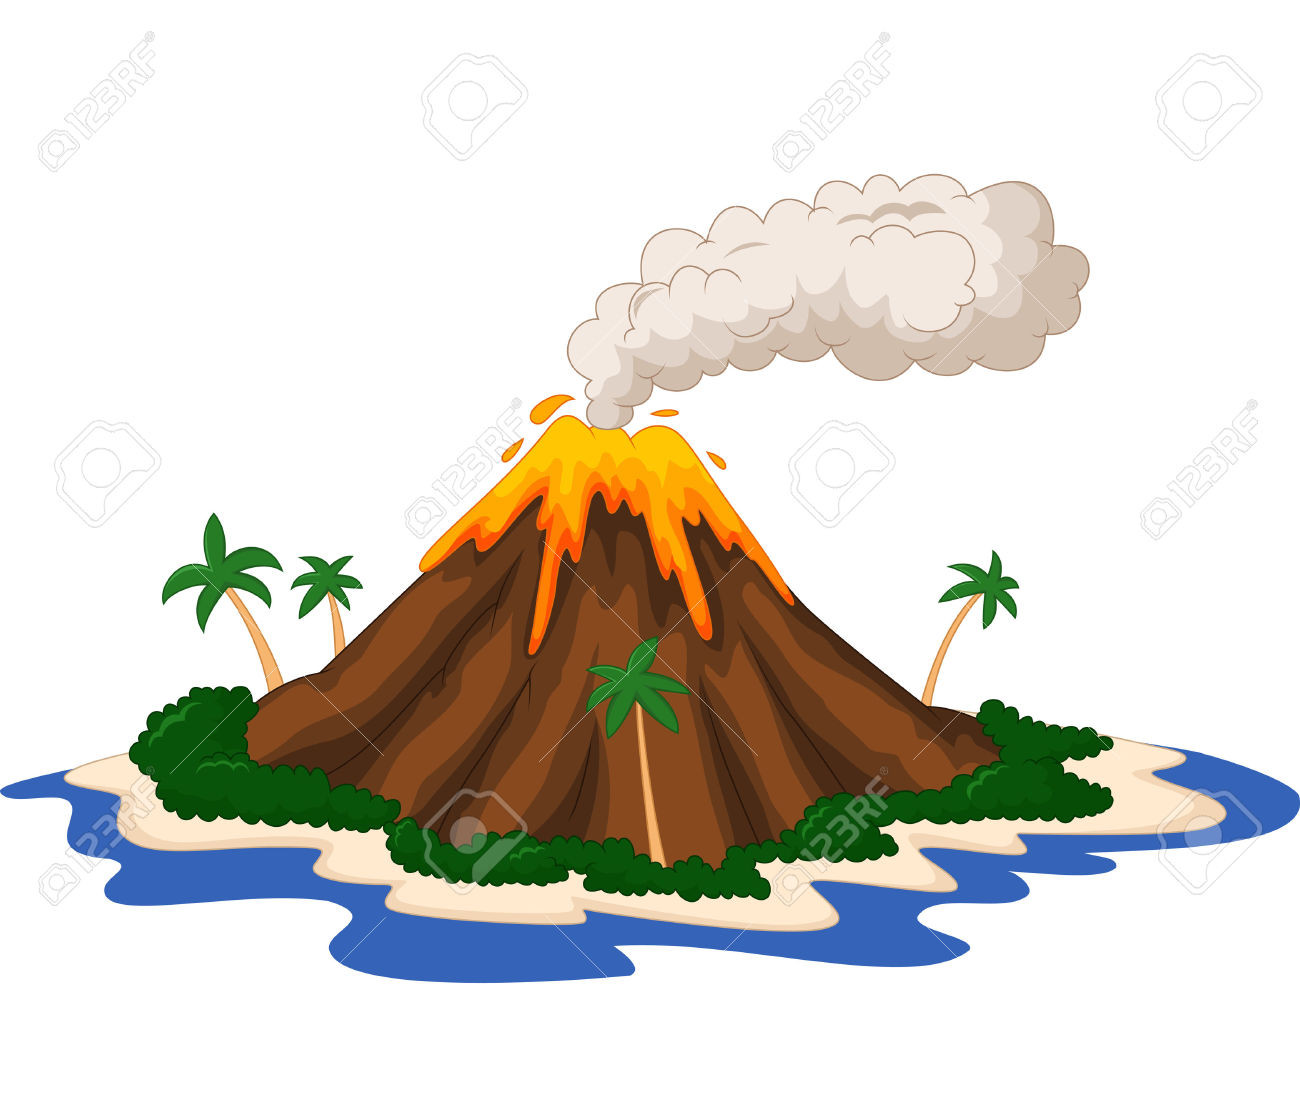 Volcano clipart volcano hawaii. Collection of images